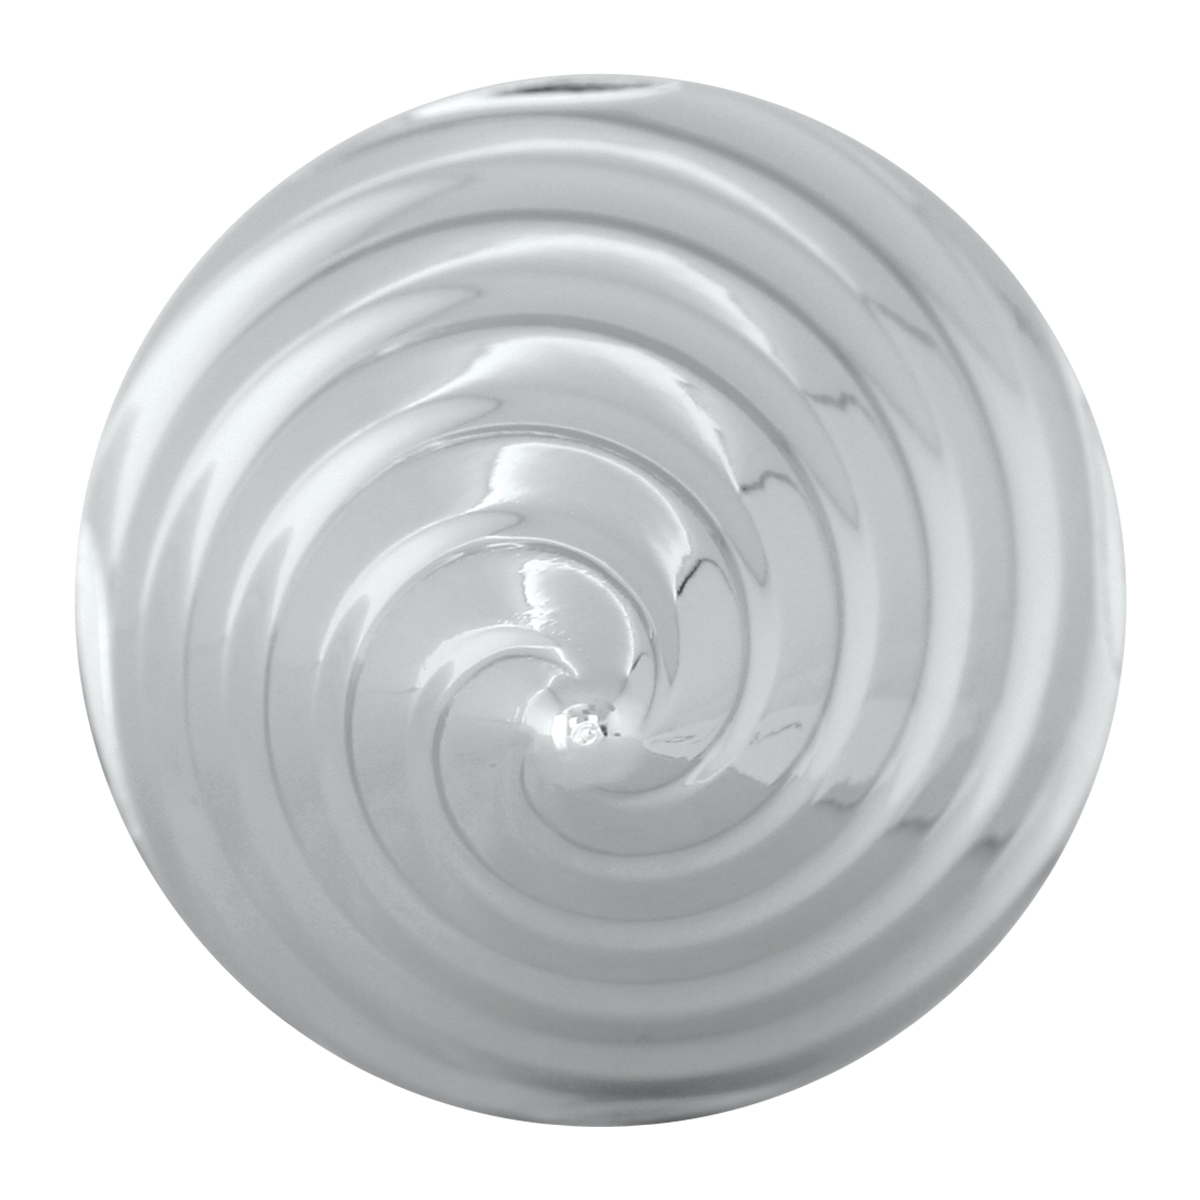 Counter Clockwise Twister Chrome Plastic Push-On Lug Nut Cover w/o Flange